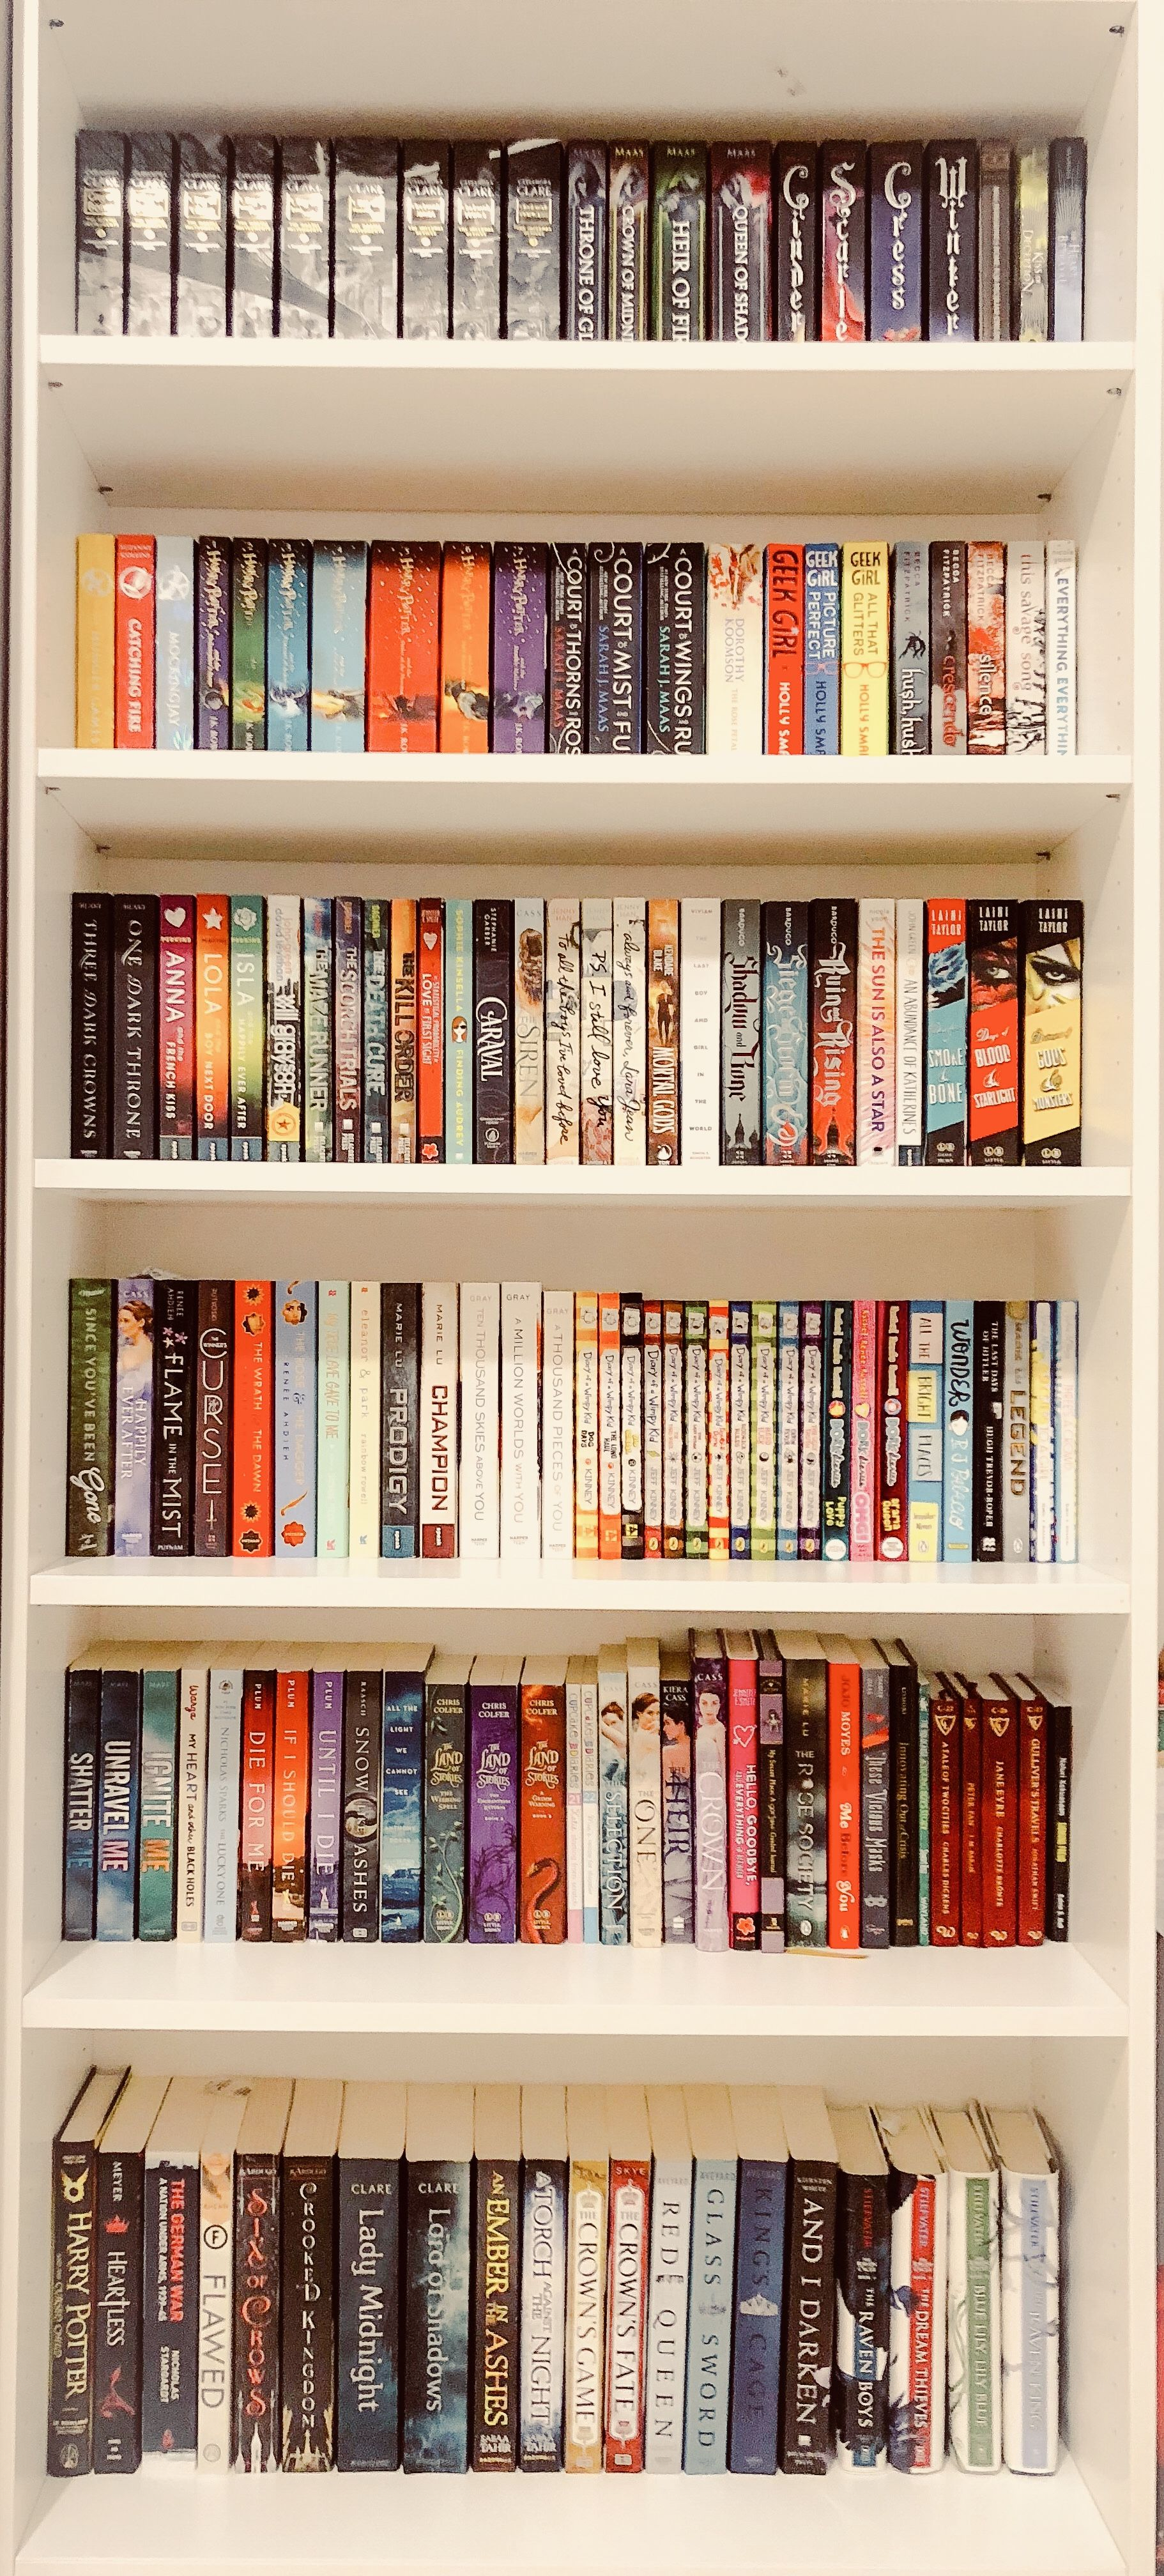 Shelfie Booksncolors Bookshelf Aesthetic Colors YAlit Novels